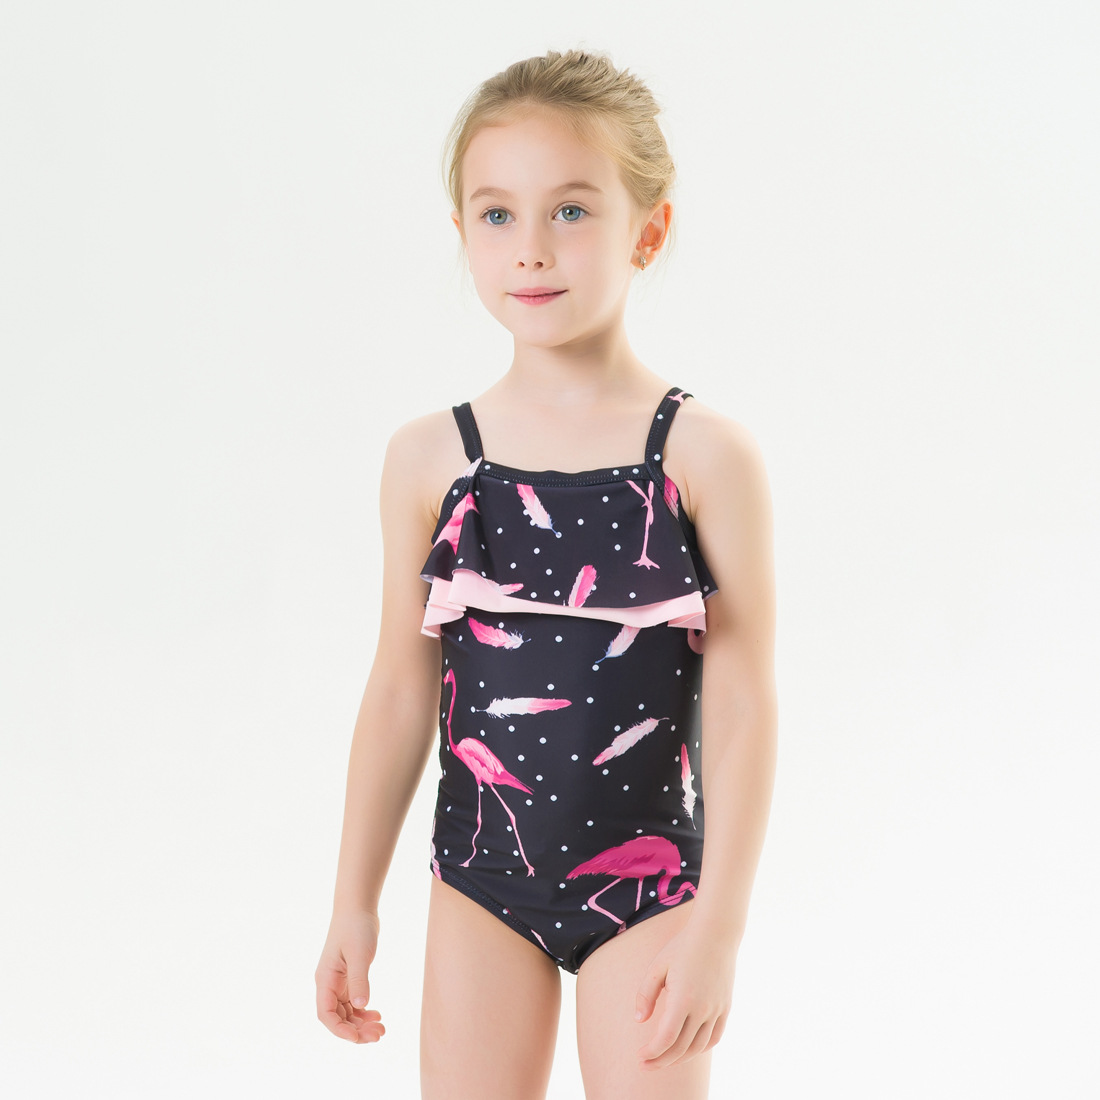 2020 New Style Hot Selling Europe And America GIRL'S Swimsuit One-piece Flamingo Elasticity Quick-Dry Hot Springs Swimming Pool